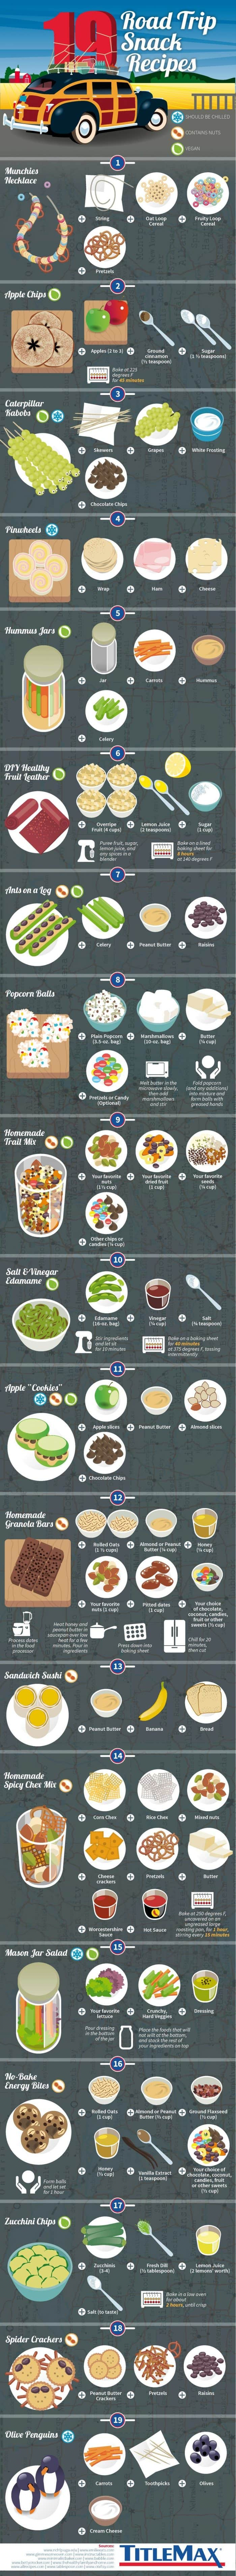 RoadTripSnacks infographic